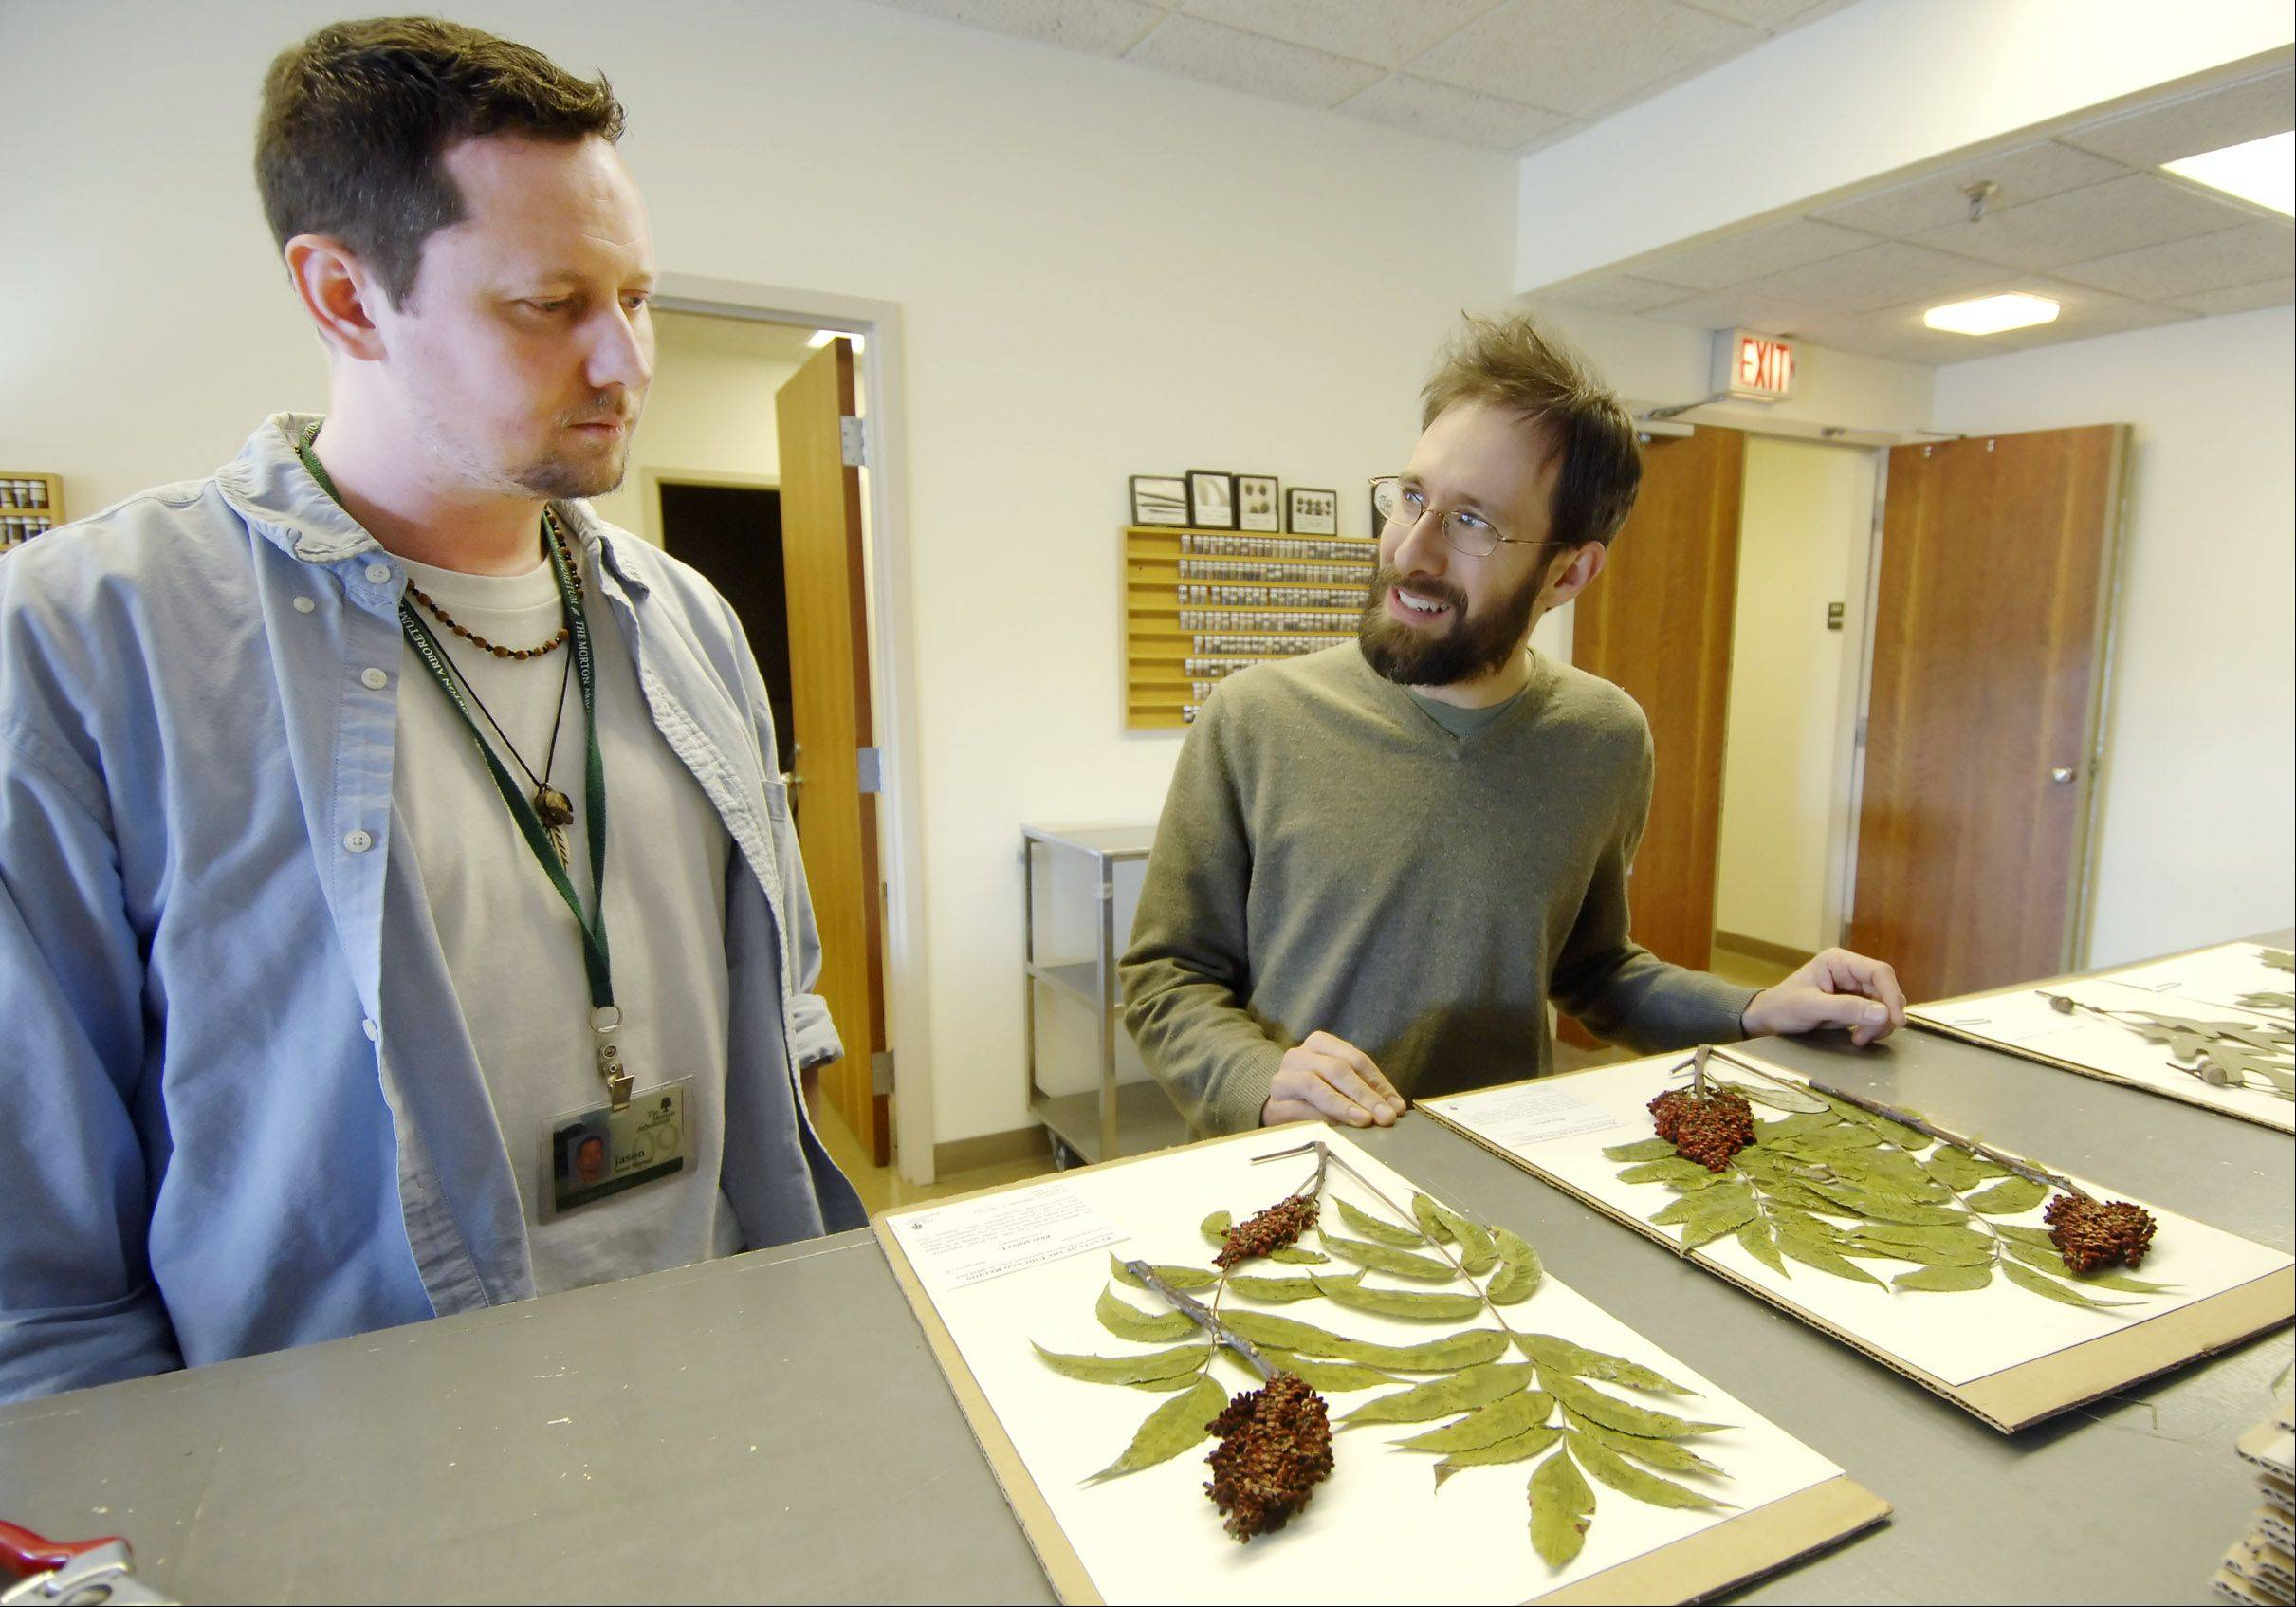 Fulbright Scholar Andrew Hipp, right, talks about placement of dried plants on archival paper with assistant Jason Sturner in this file photo from 2009.